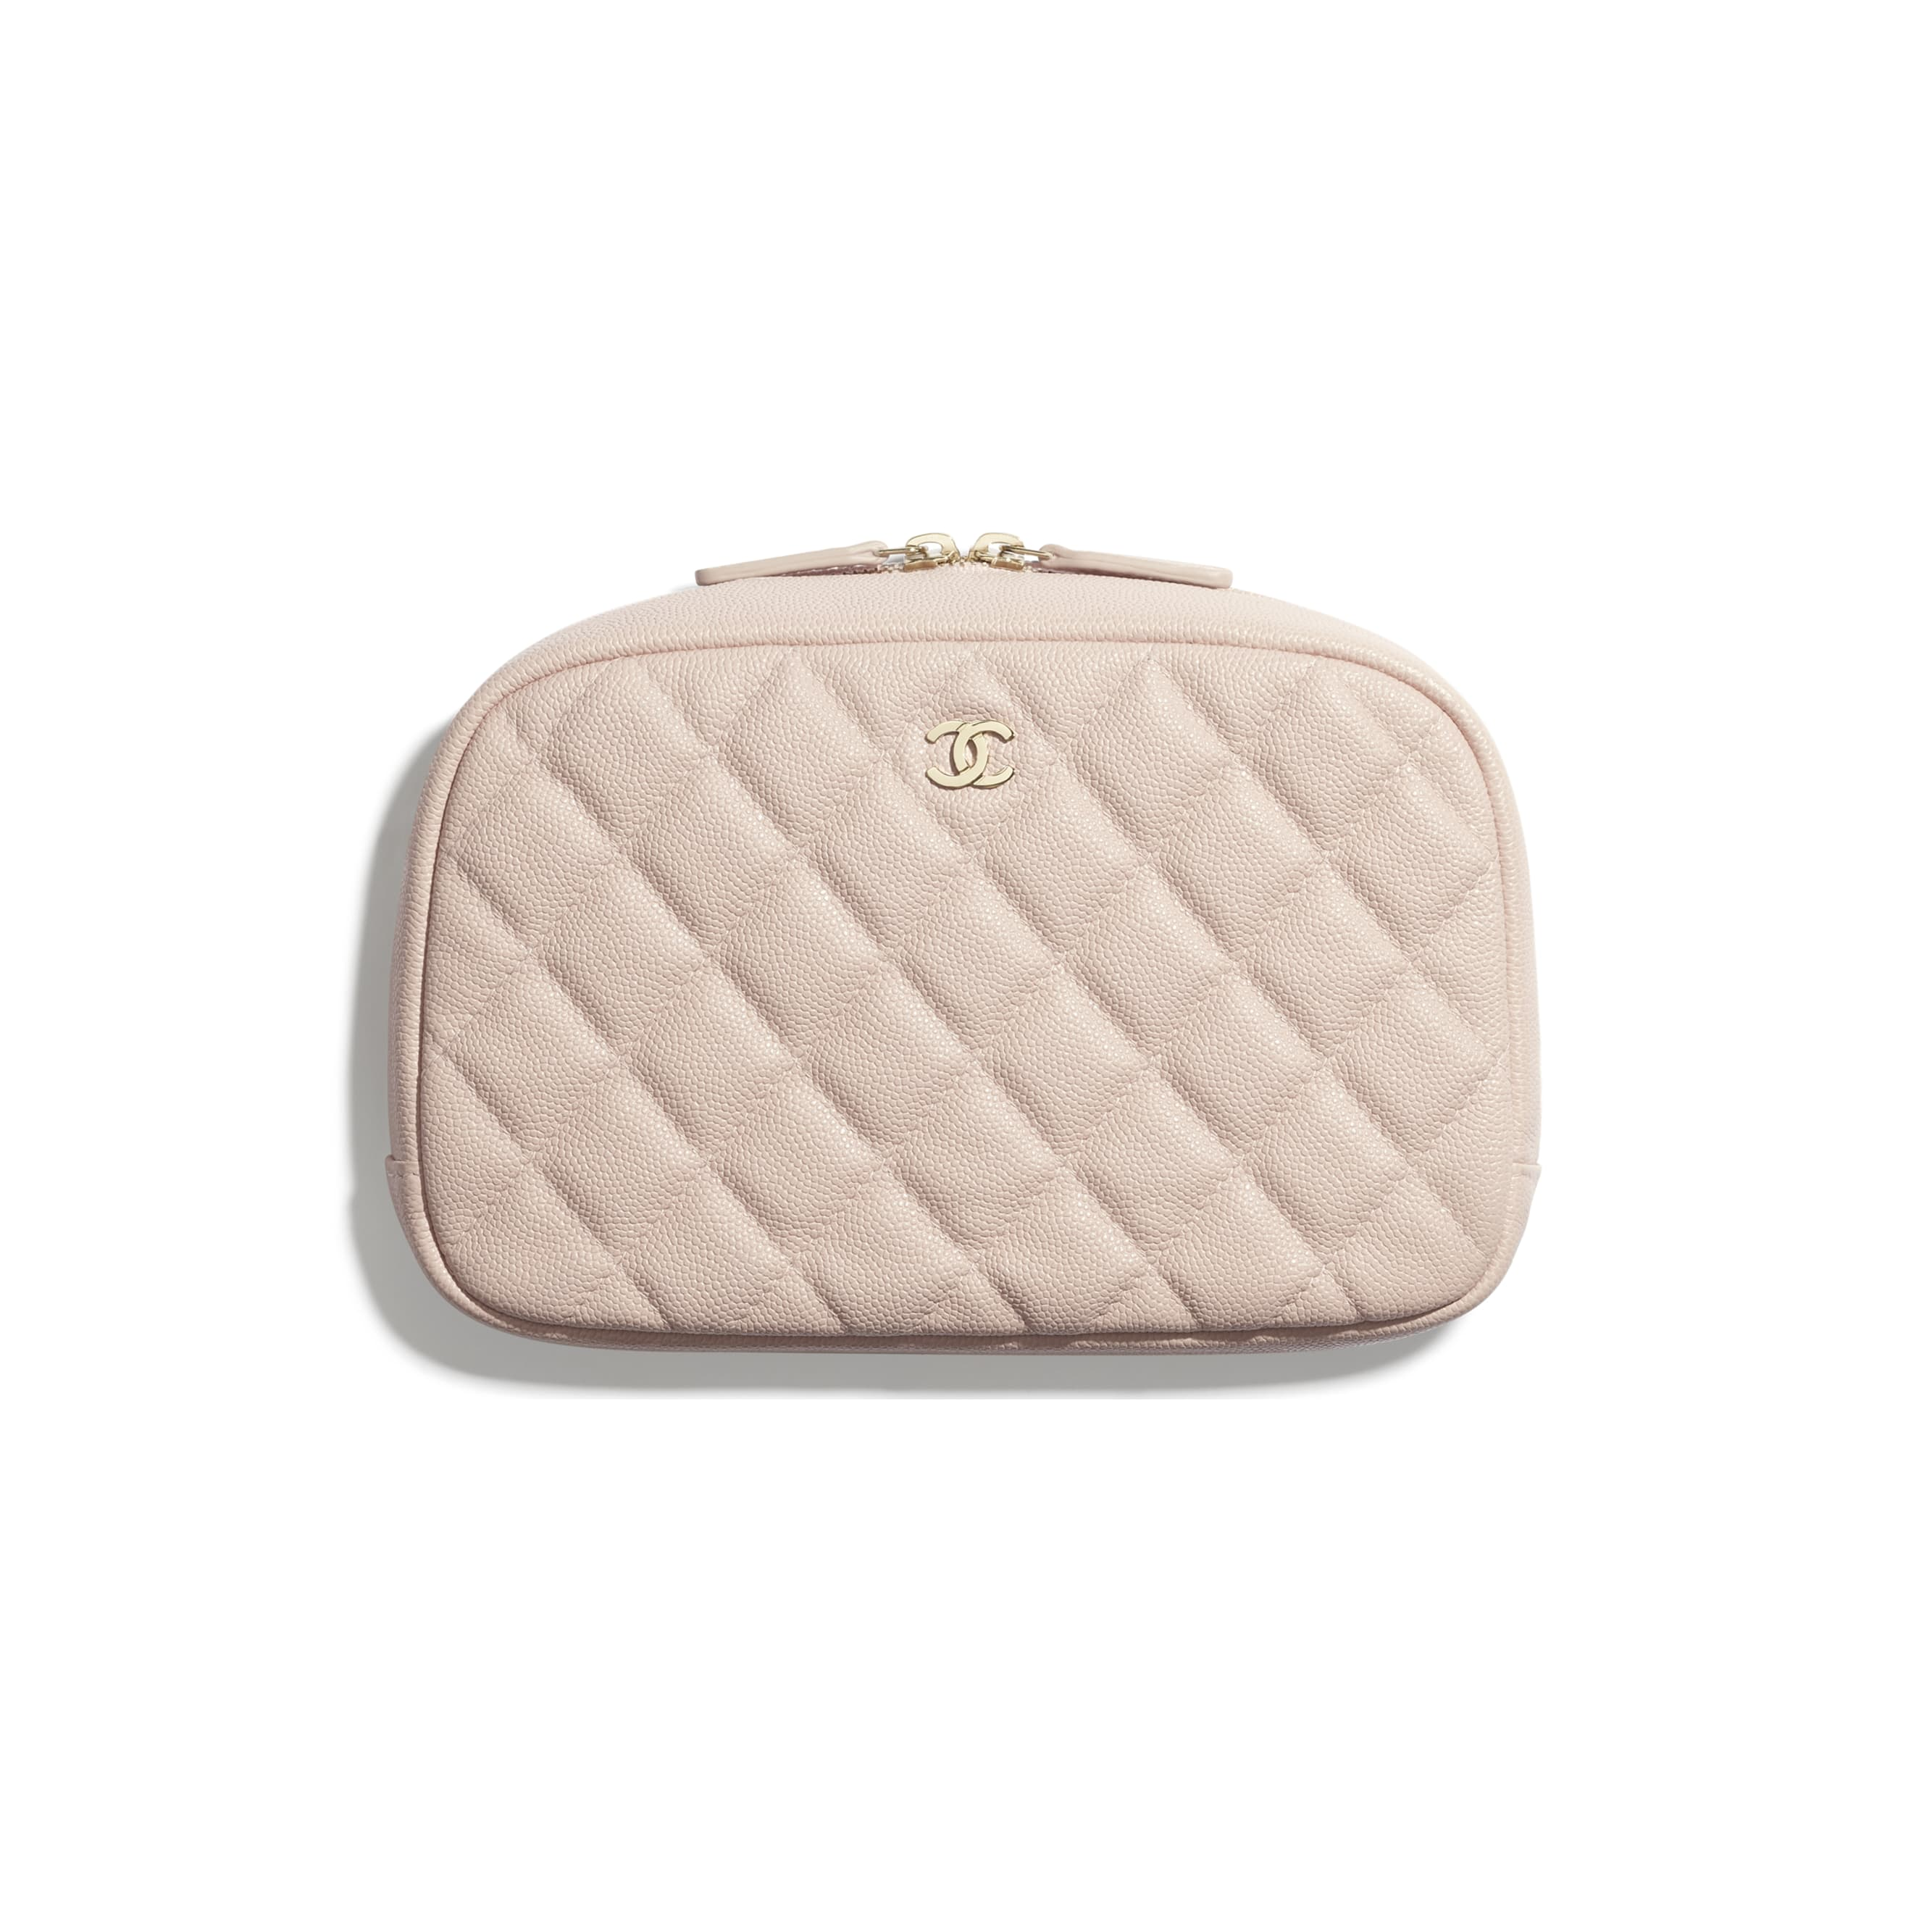 Classic Case - Pale Pink - Grained Shiny Calfskin & Gold-Tone Metal - CHANEL - Default view - see standard sized version